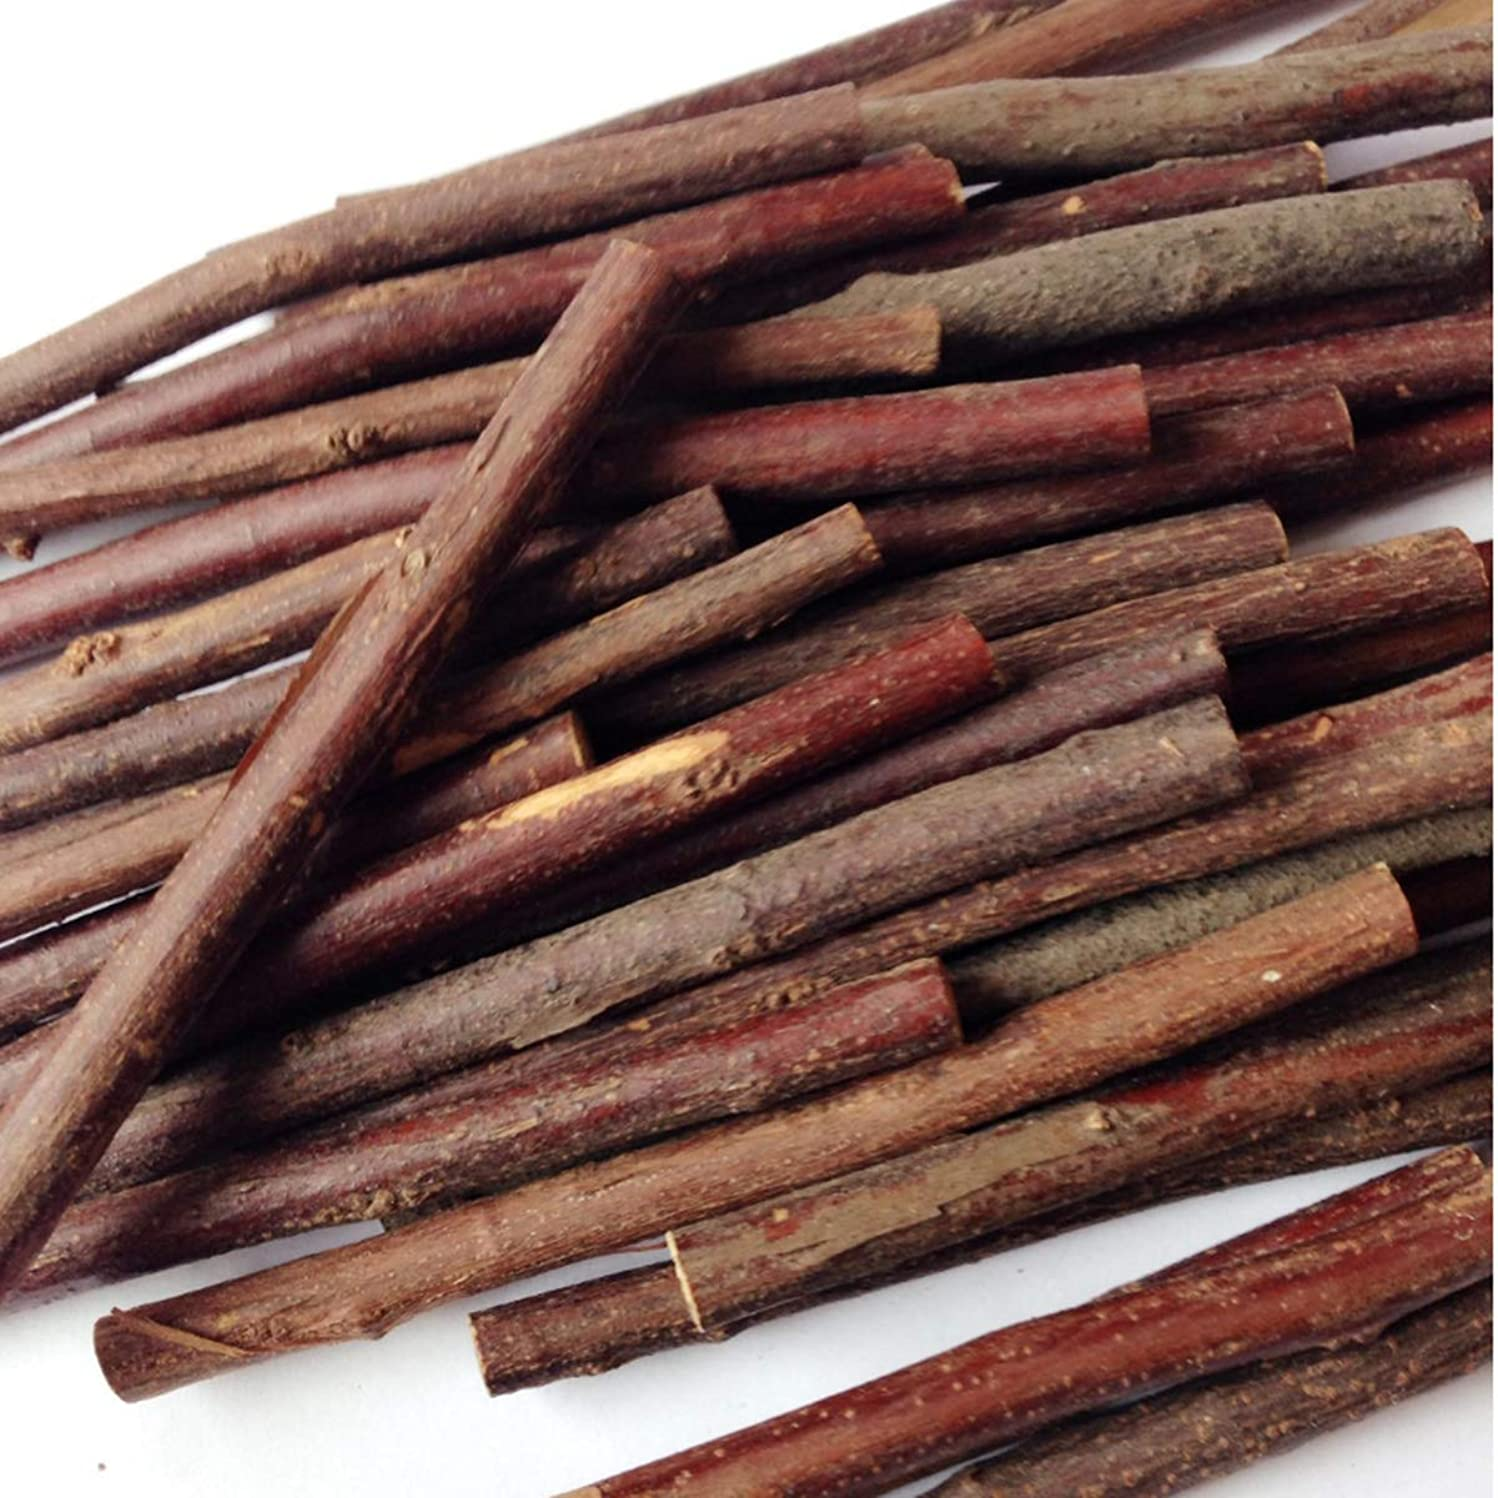 100Pcs 4 Inch Long 10cm 0.1-0.2 Inch in Diameter Wood Log Sticks for DIY Crafts Photo Props